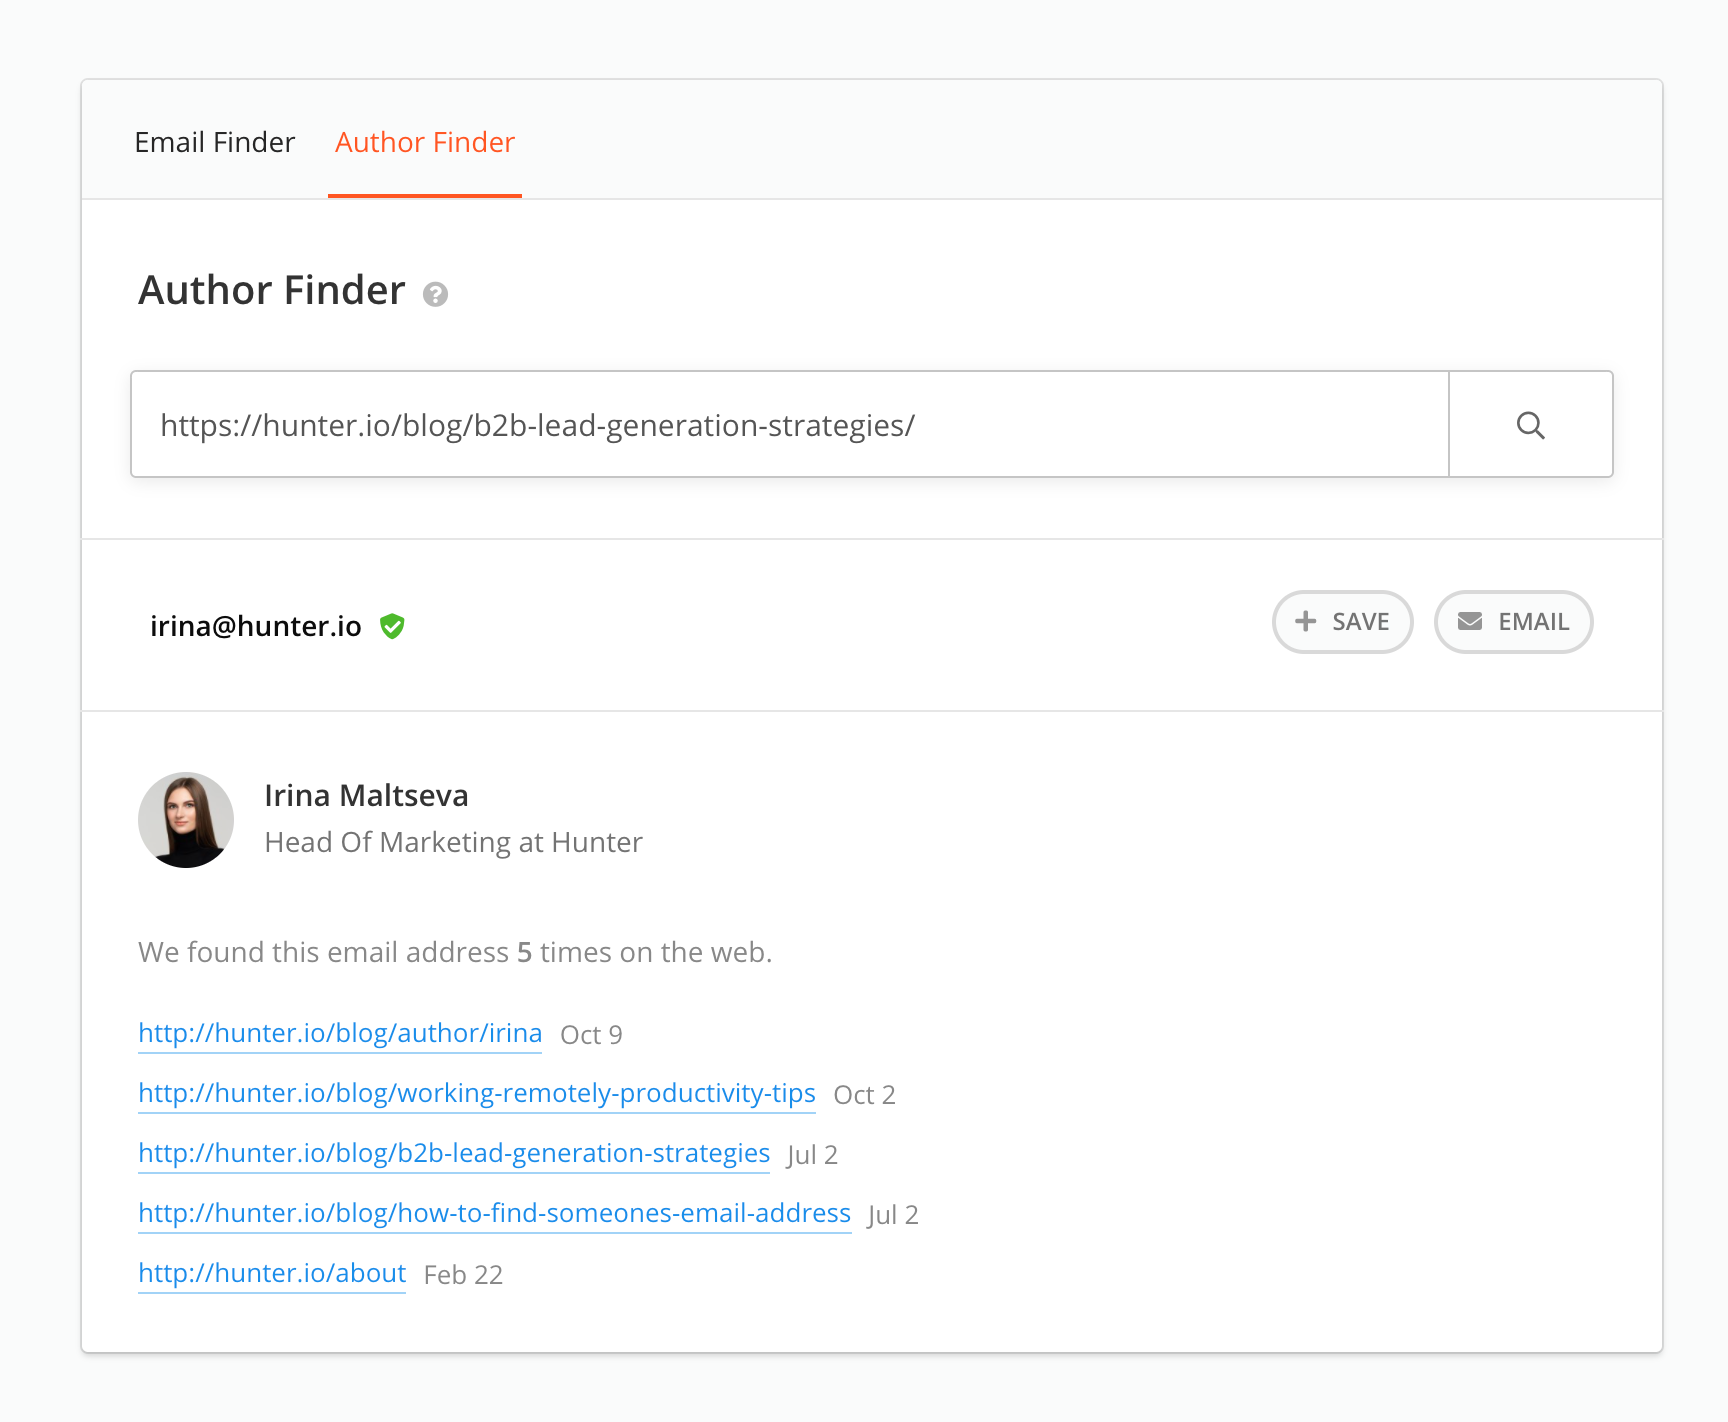 Author Finder example